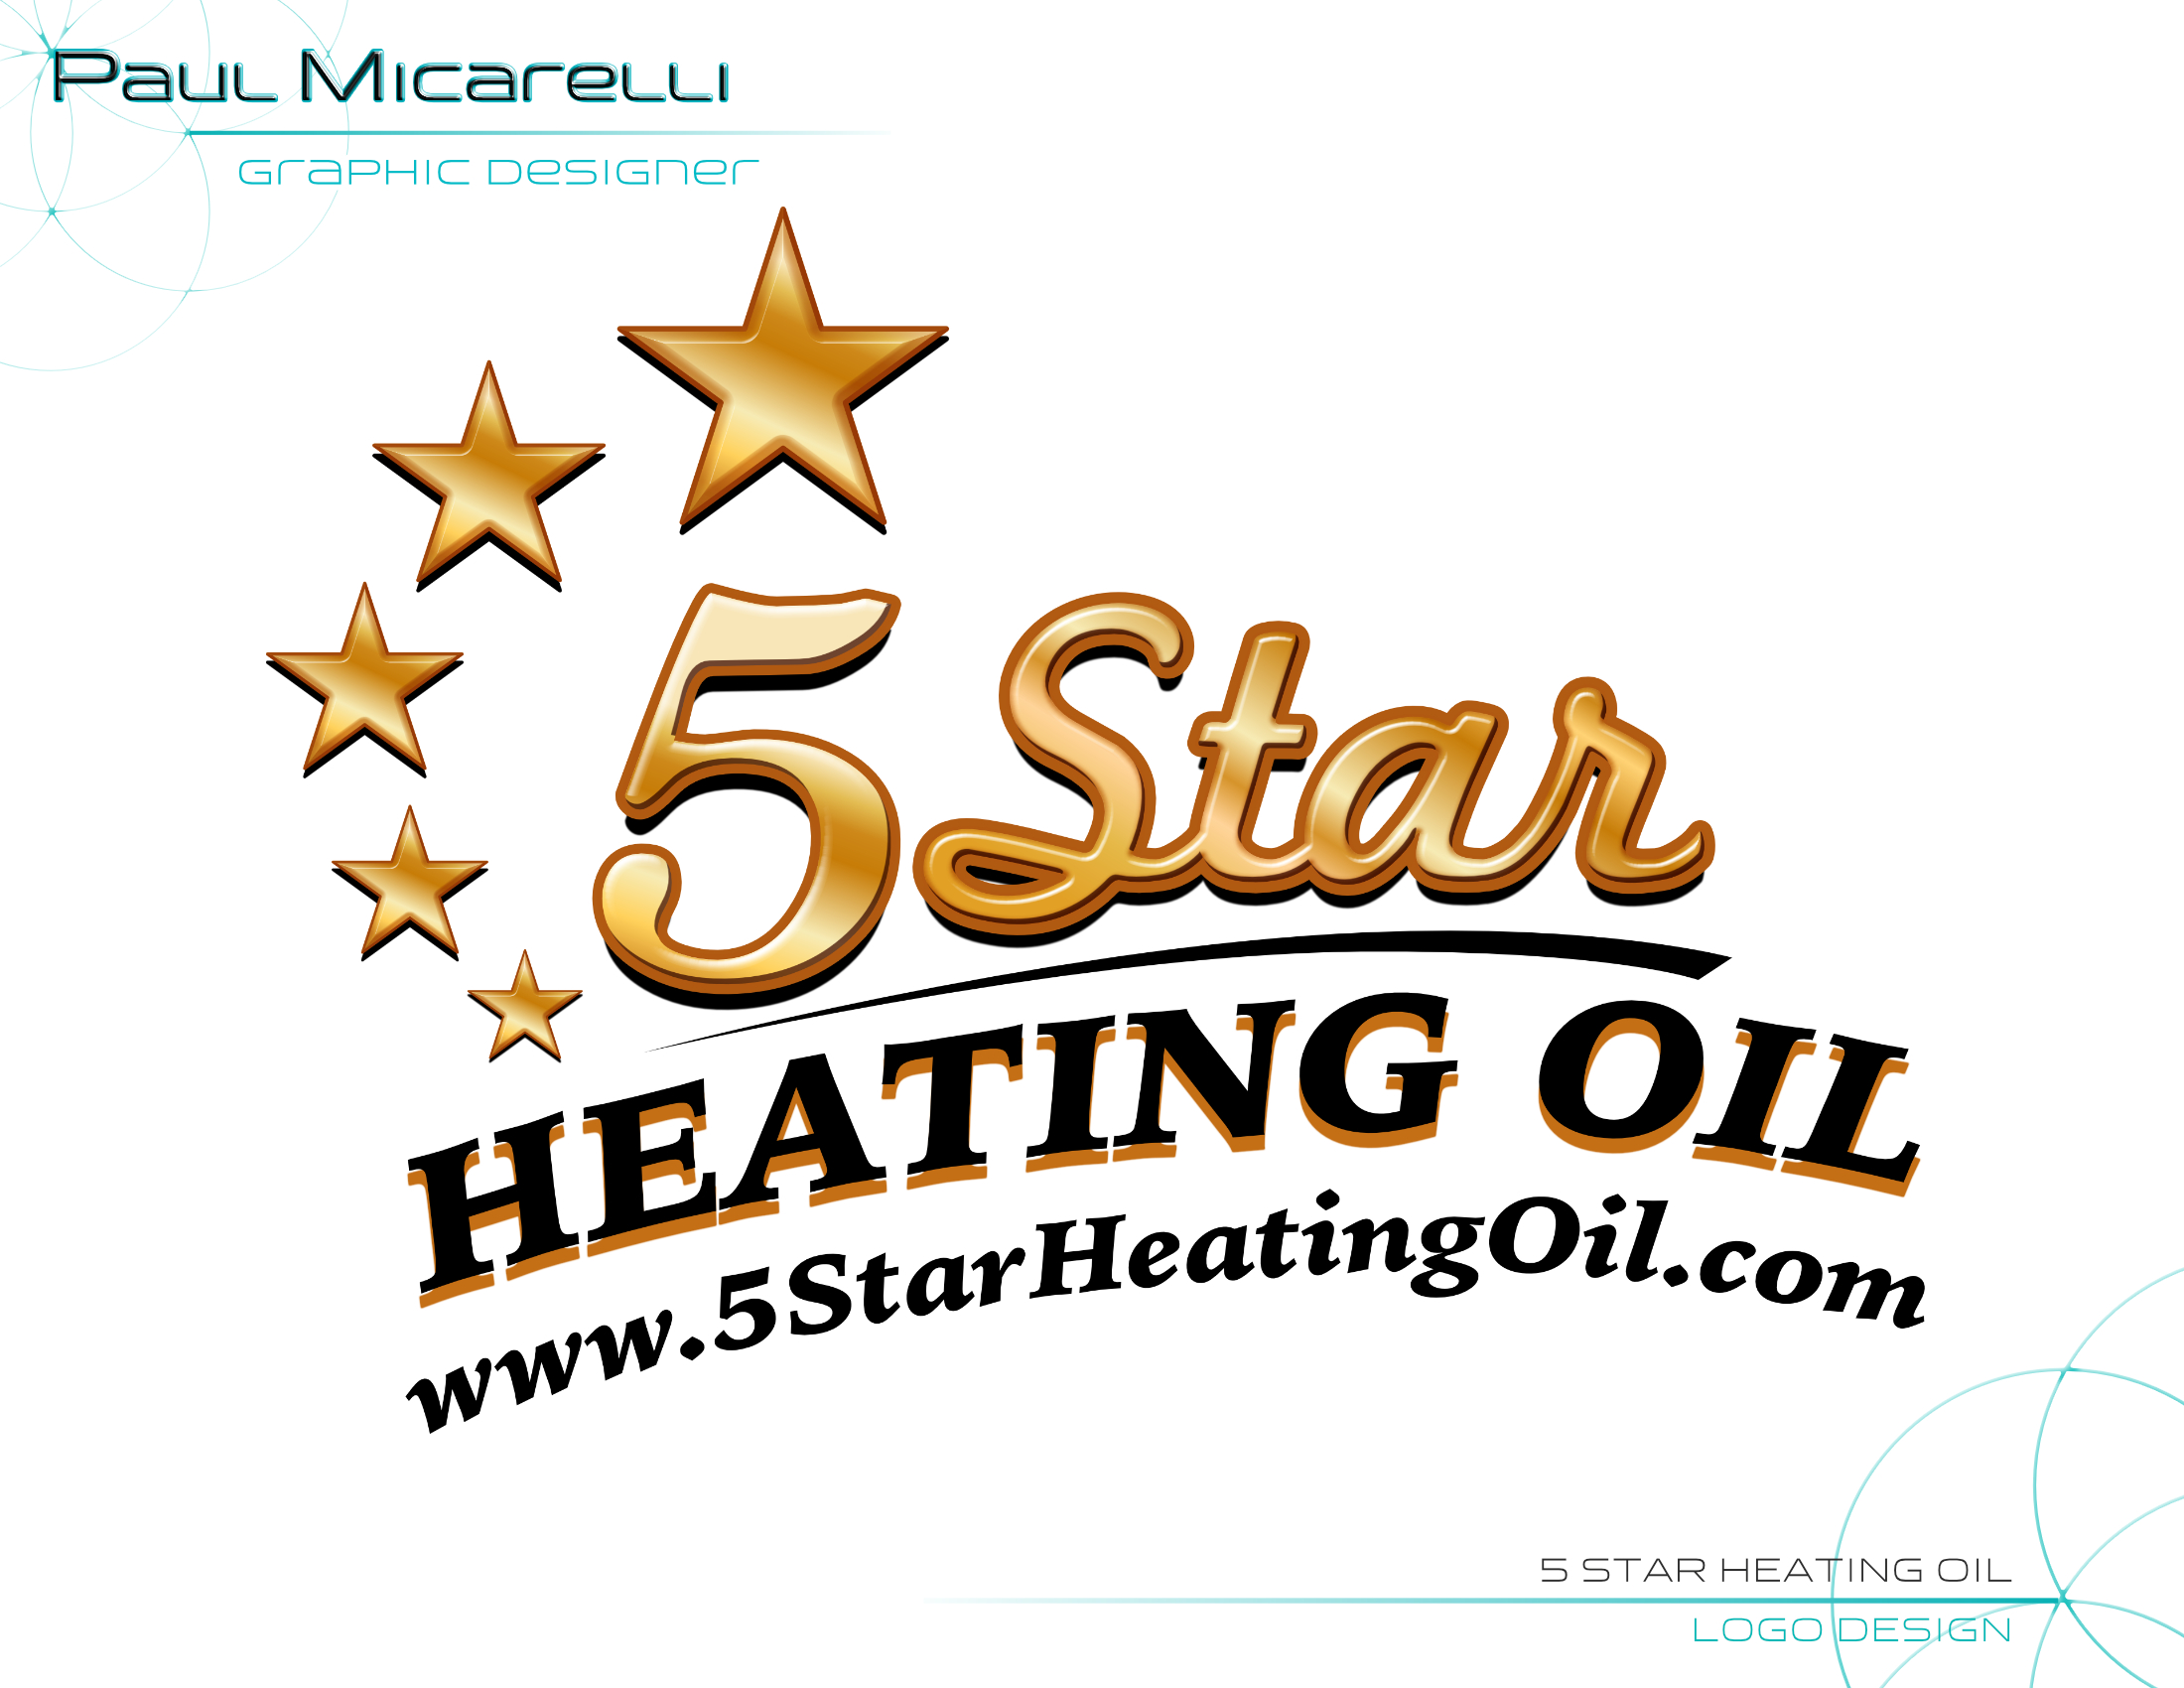 Paul-Micarelli-5 Star Heating Oil Logo